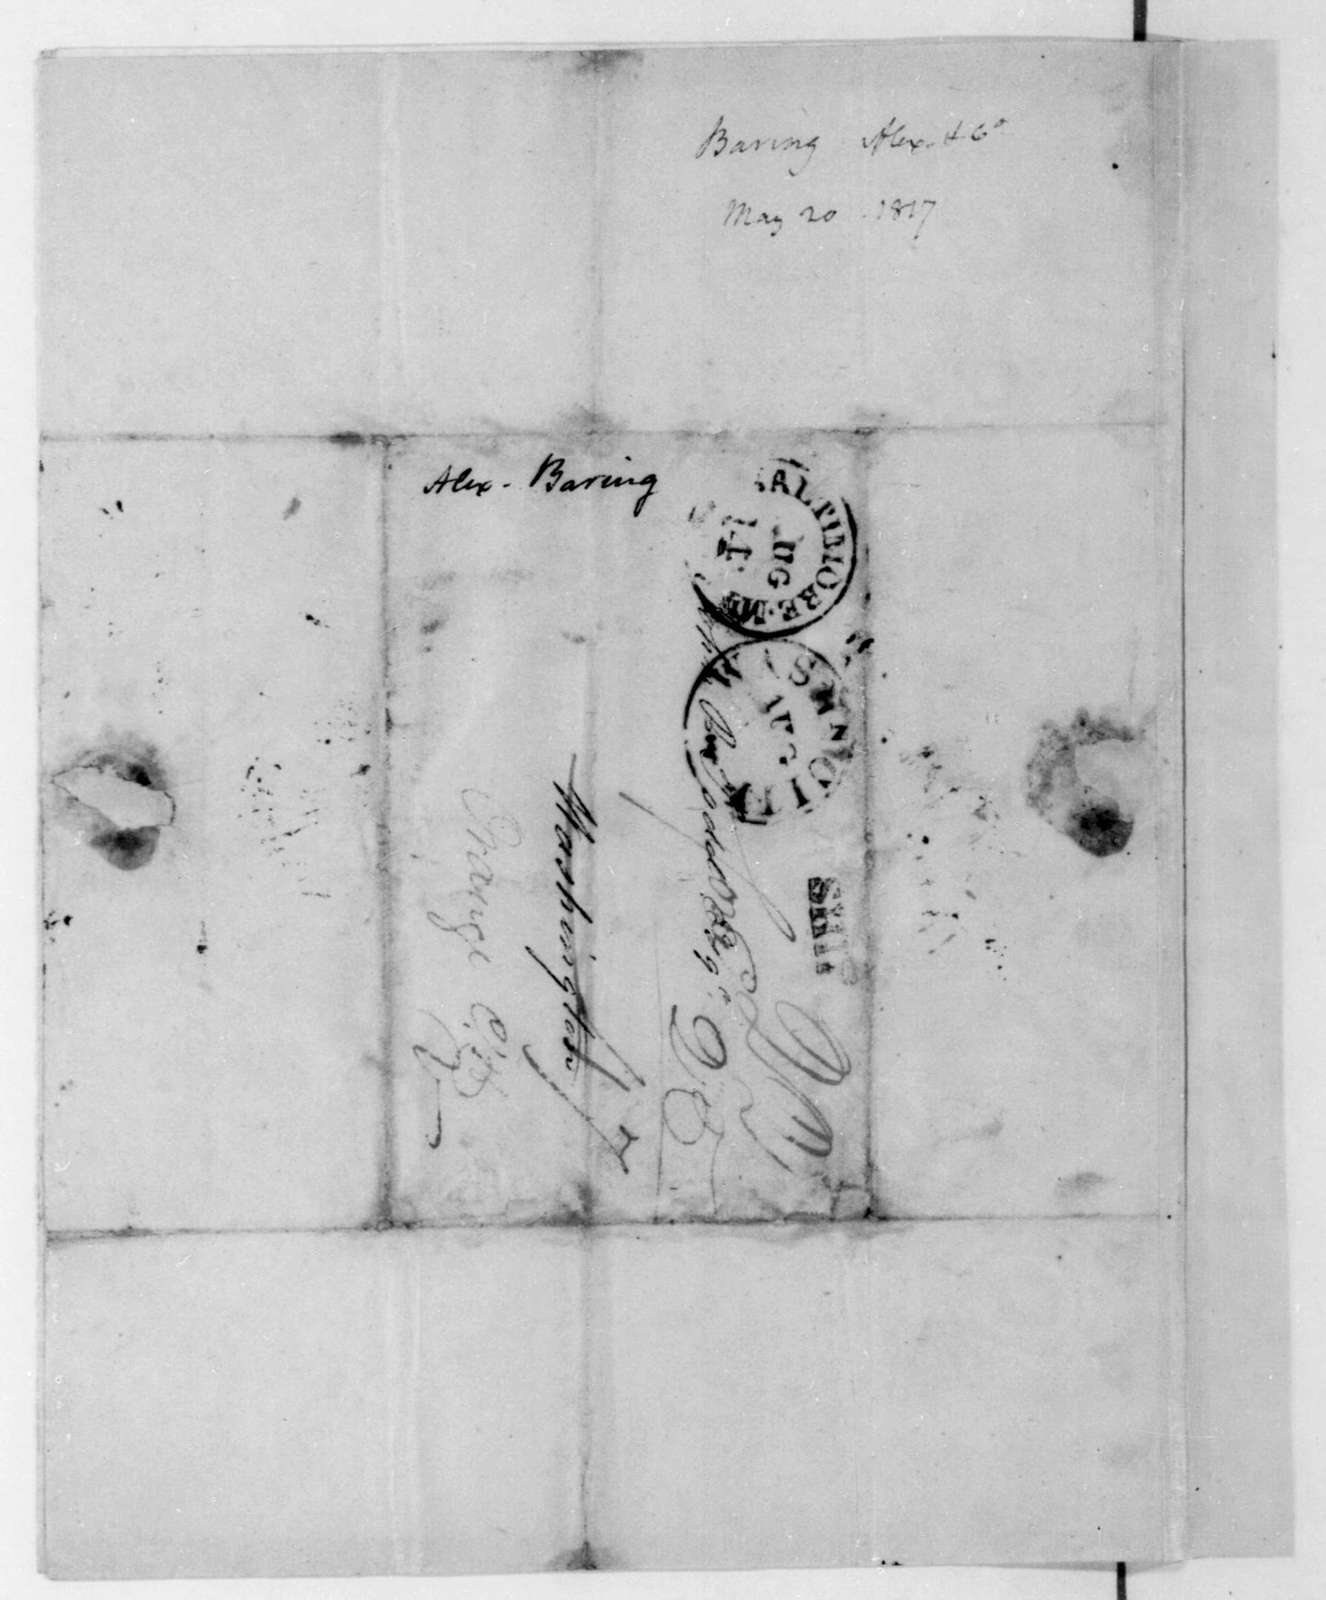 Baring Brothers & Co. to John P. Todd, May 20, 1817. With Account.